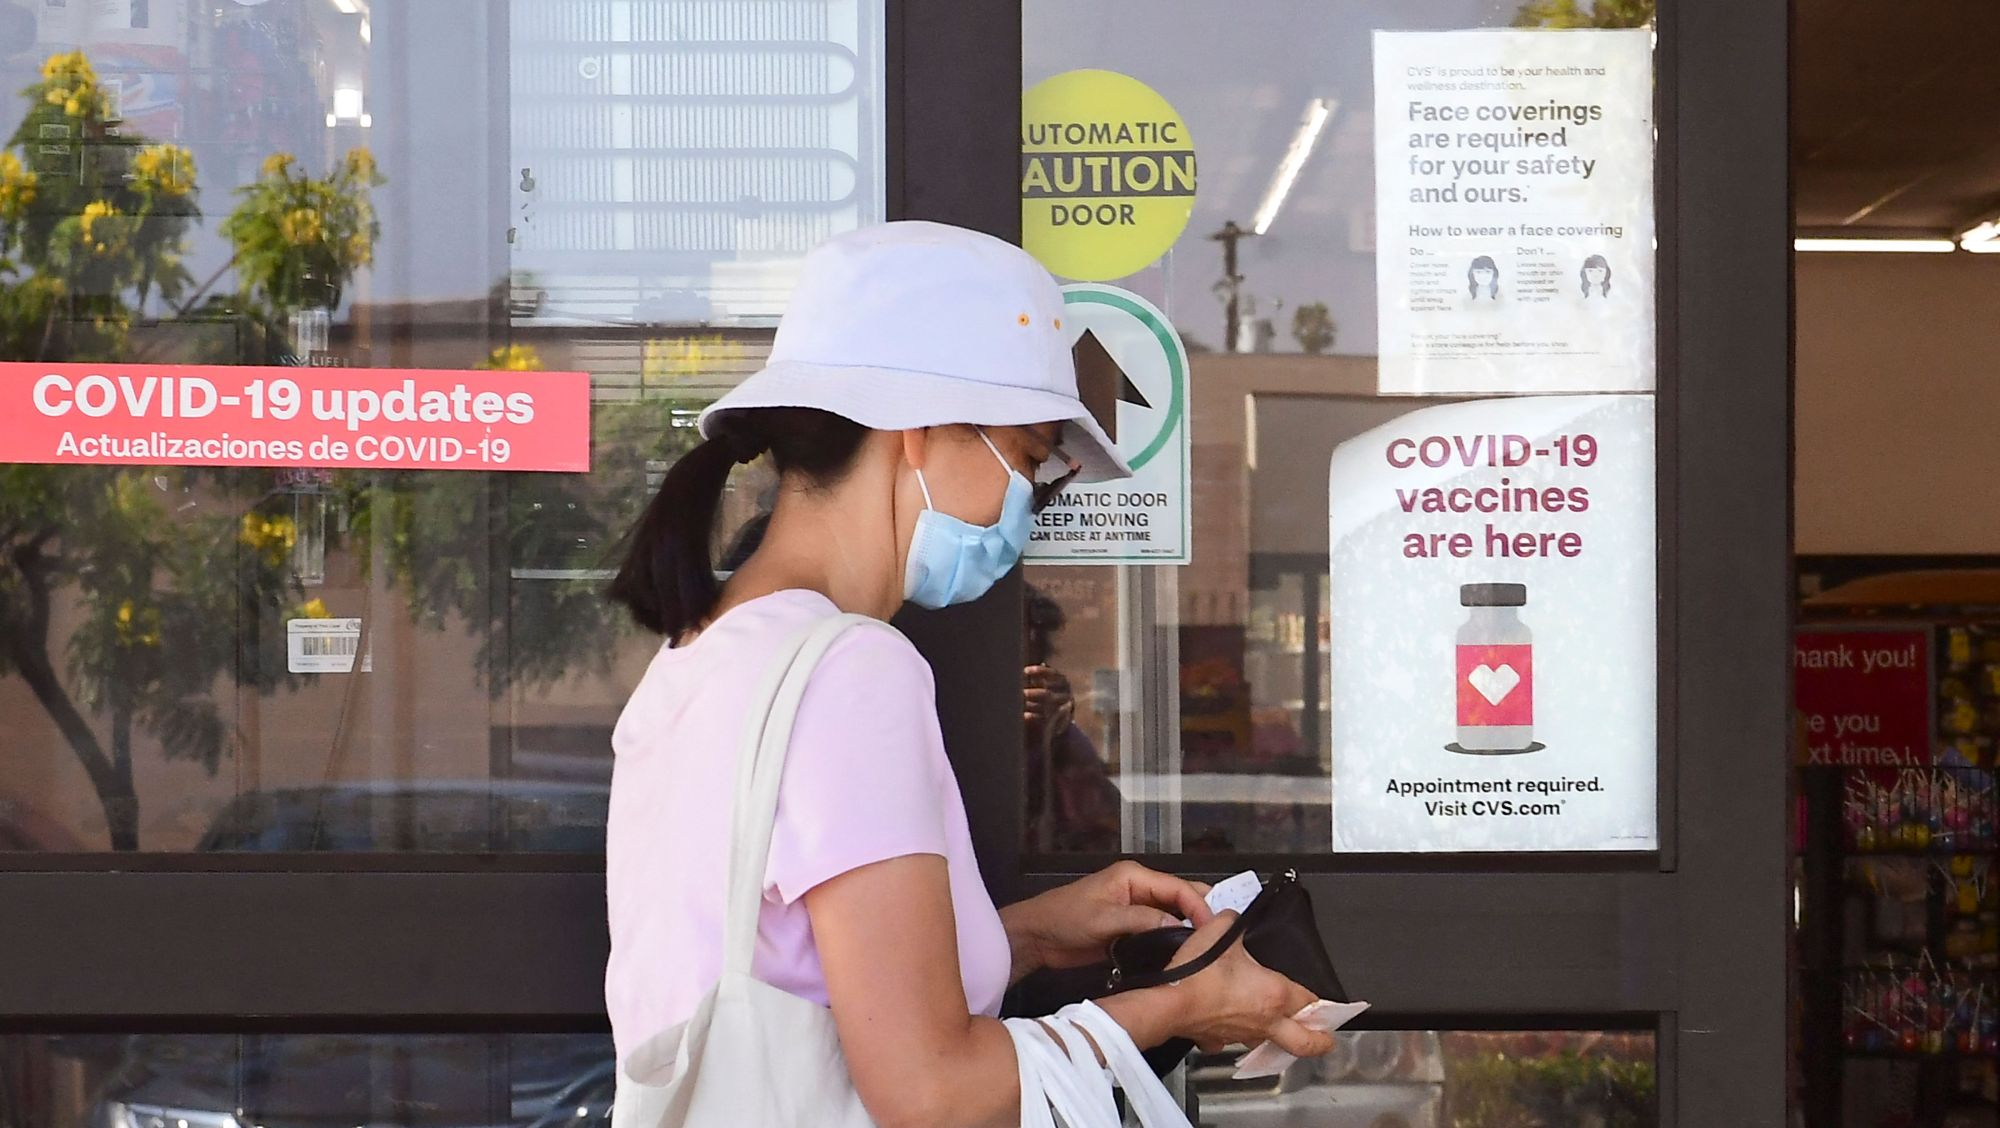 A woman enters a CVS drugstore in Monterey Park, California, where Covid-19 vaccines are being offered on July 27, 2021. - Los Angeles County is seeing a rapid increase in new daily Covid cases due to the Delta variant as hospitalizations increase. (Photo by Frederic J. BROWN / AFP) (Photo by FREDERIC J. BROWN/AFP via Getty Images)